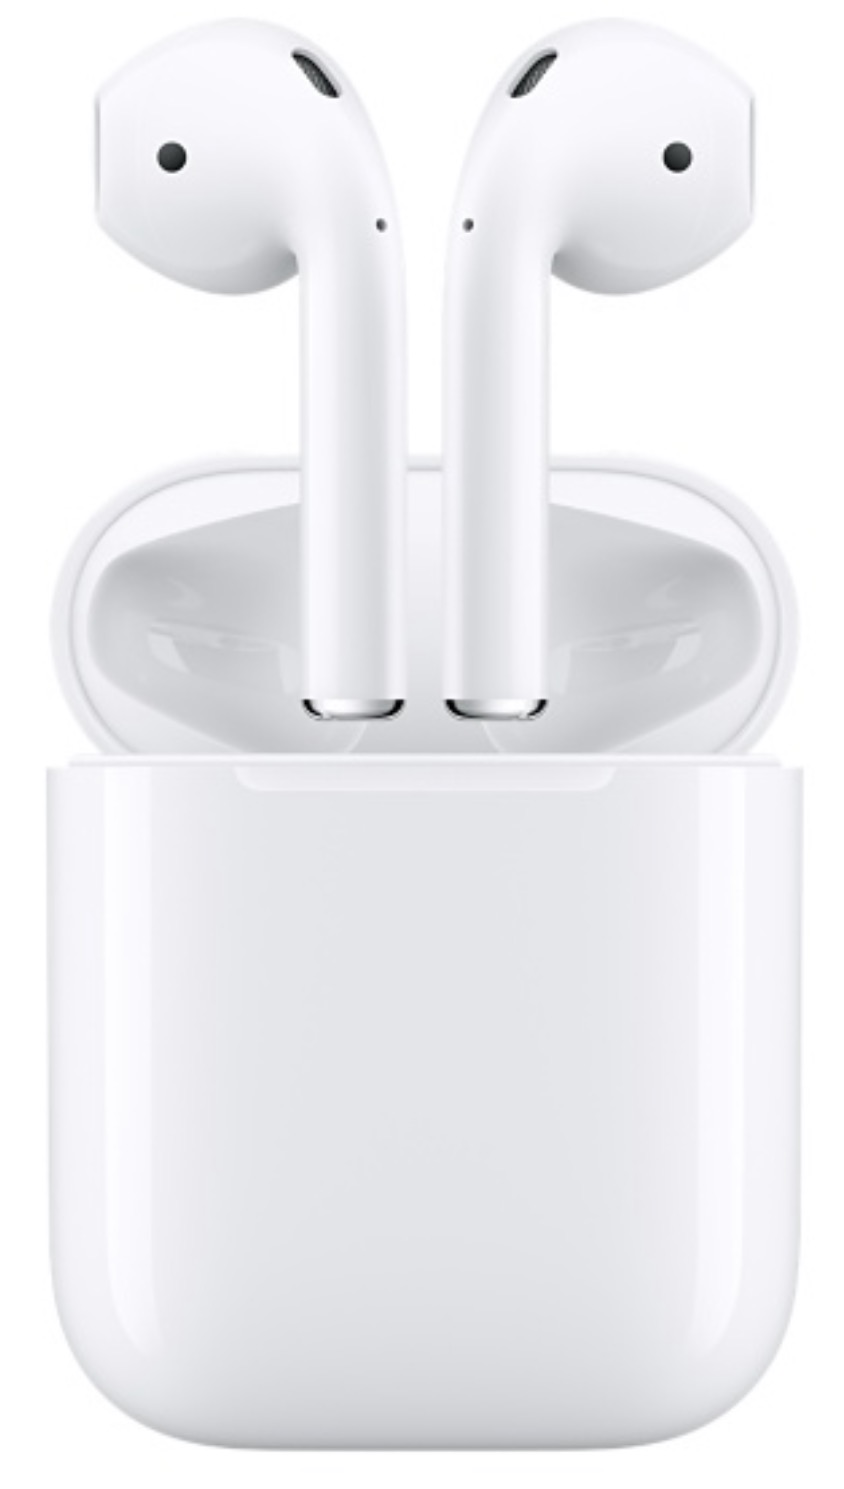 The Apple AirPods (Image Source: Apple.com)